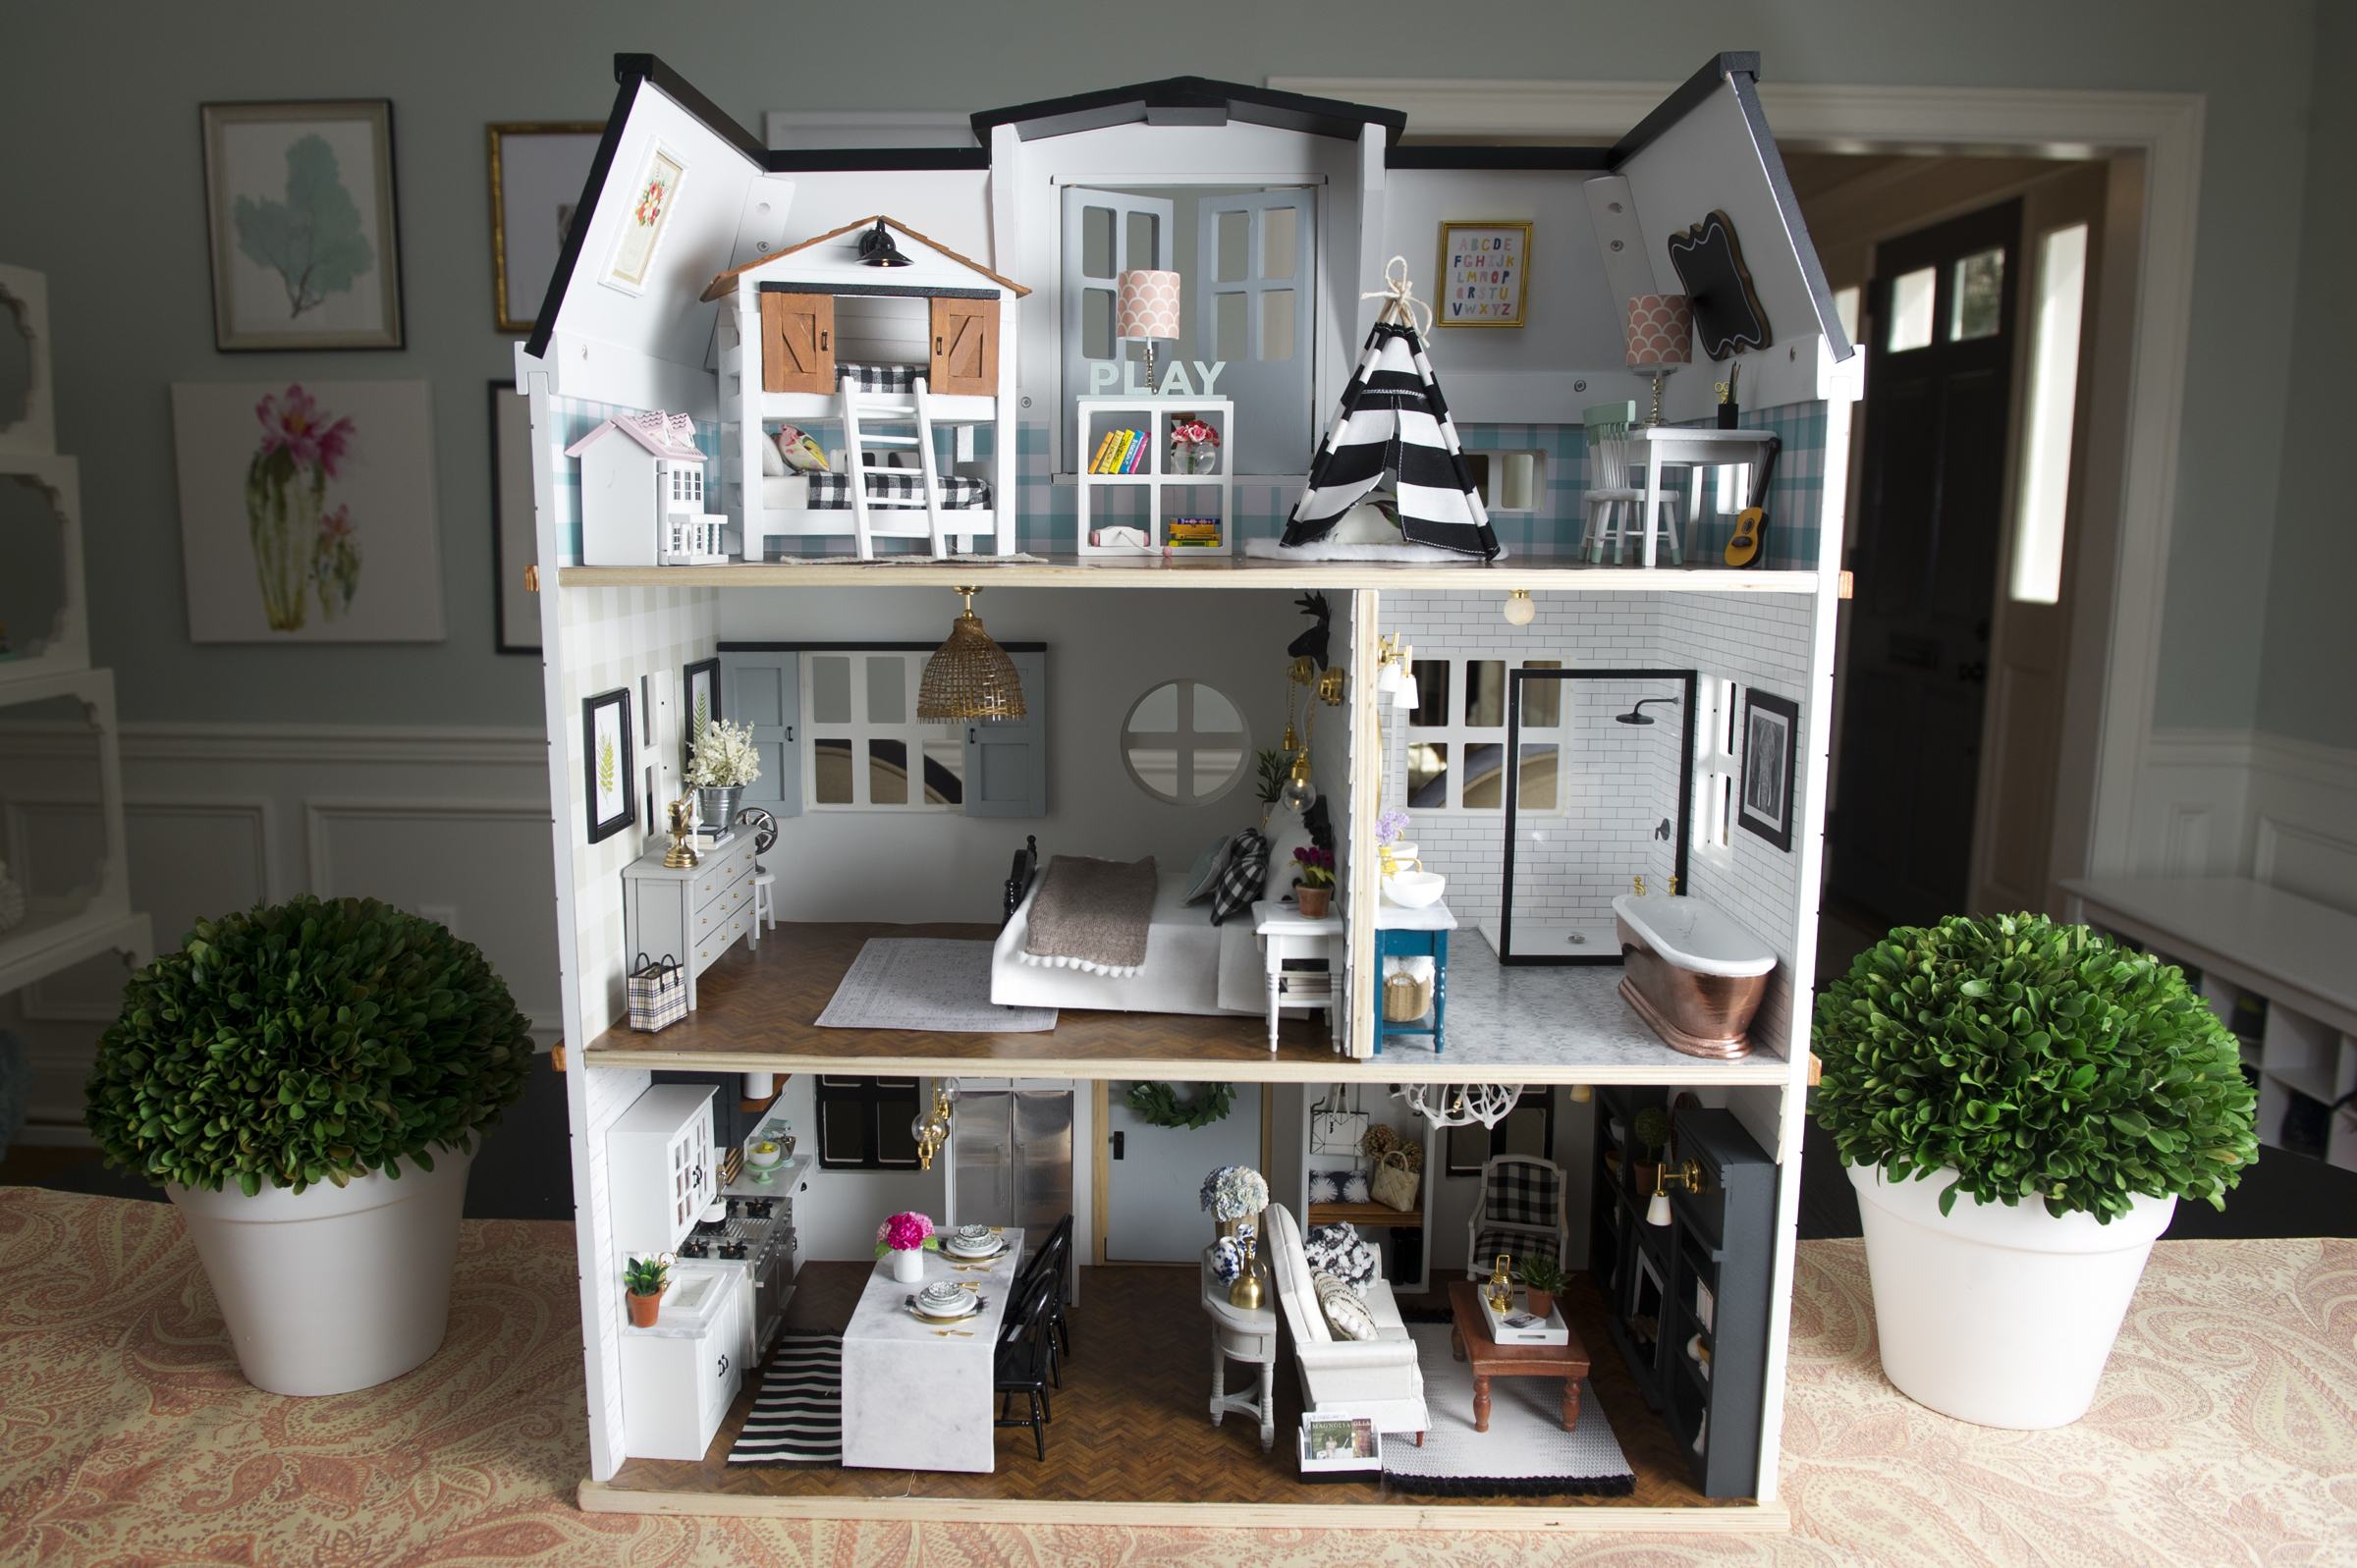 Dr. Kwandaa Roberts´ dollhouse that´s decorated in the style of HGTV´s Chip and Joanna Gaines from their TV show Fixer Upper.